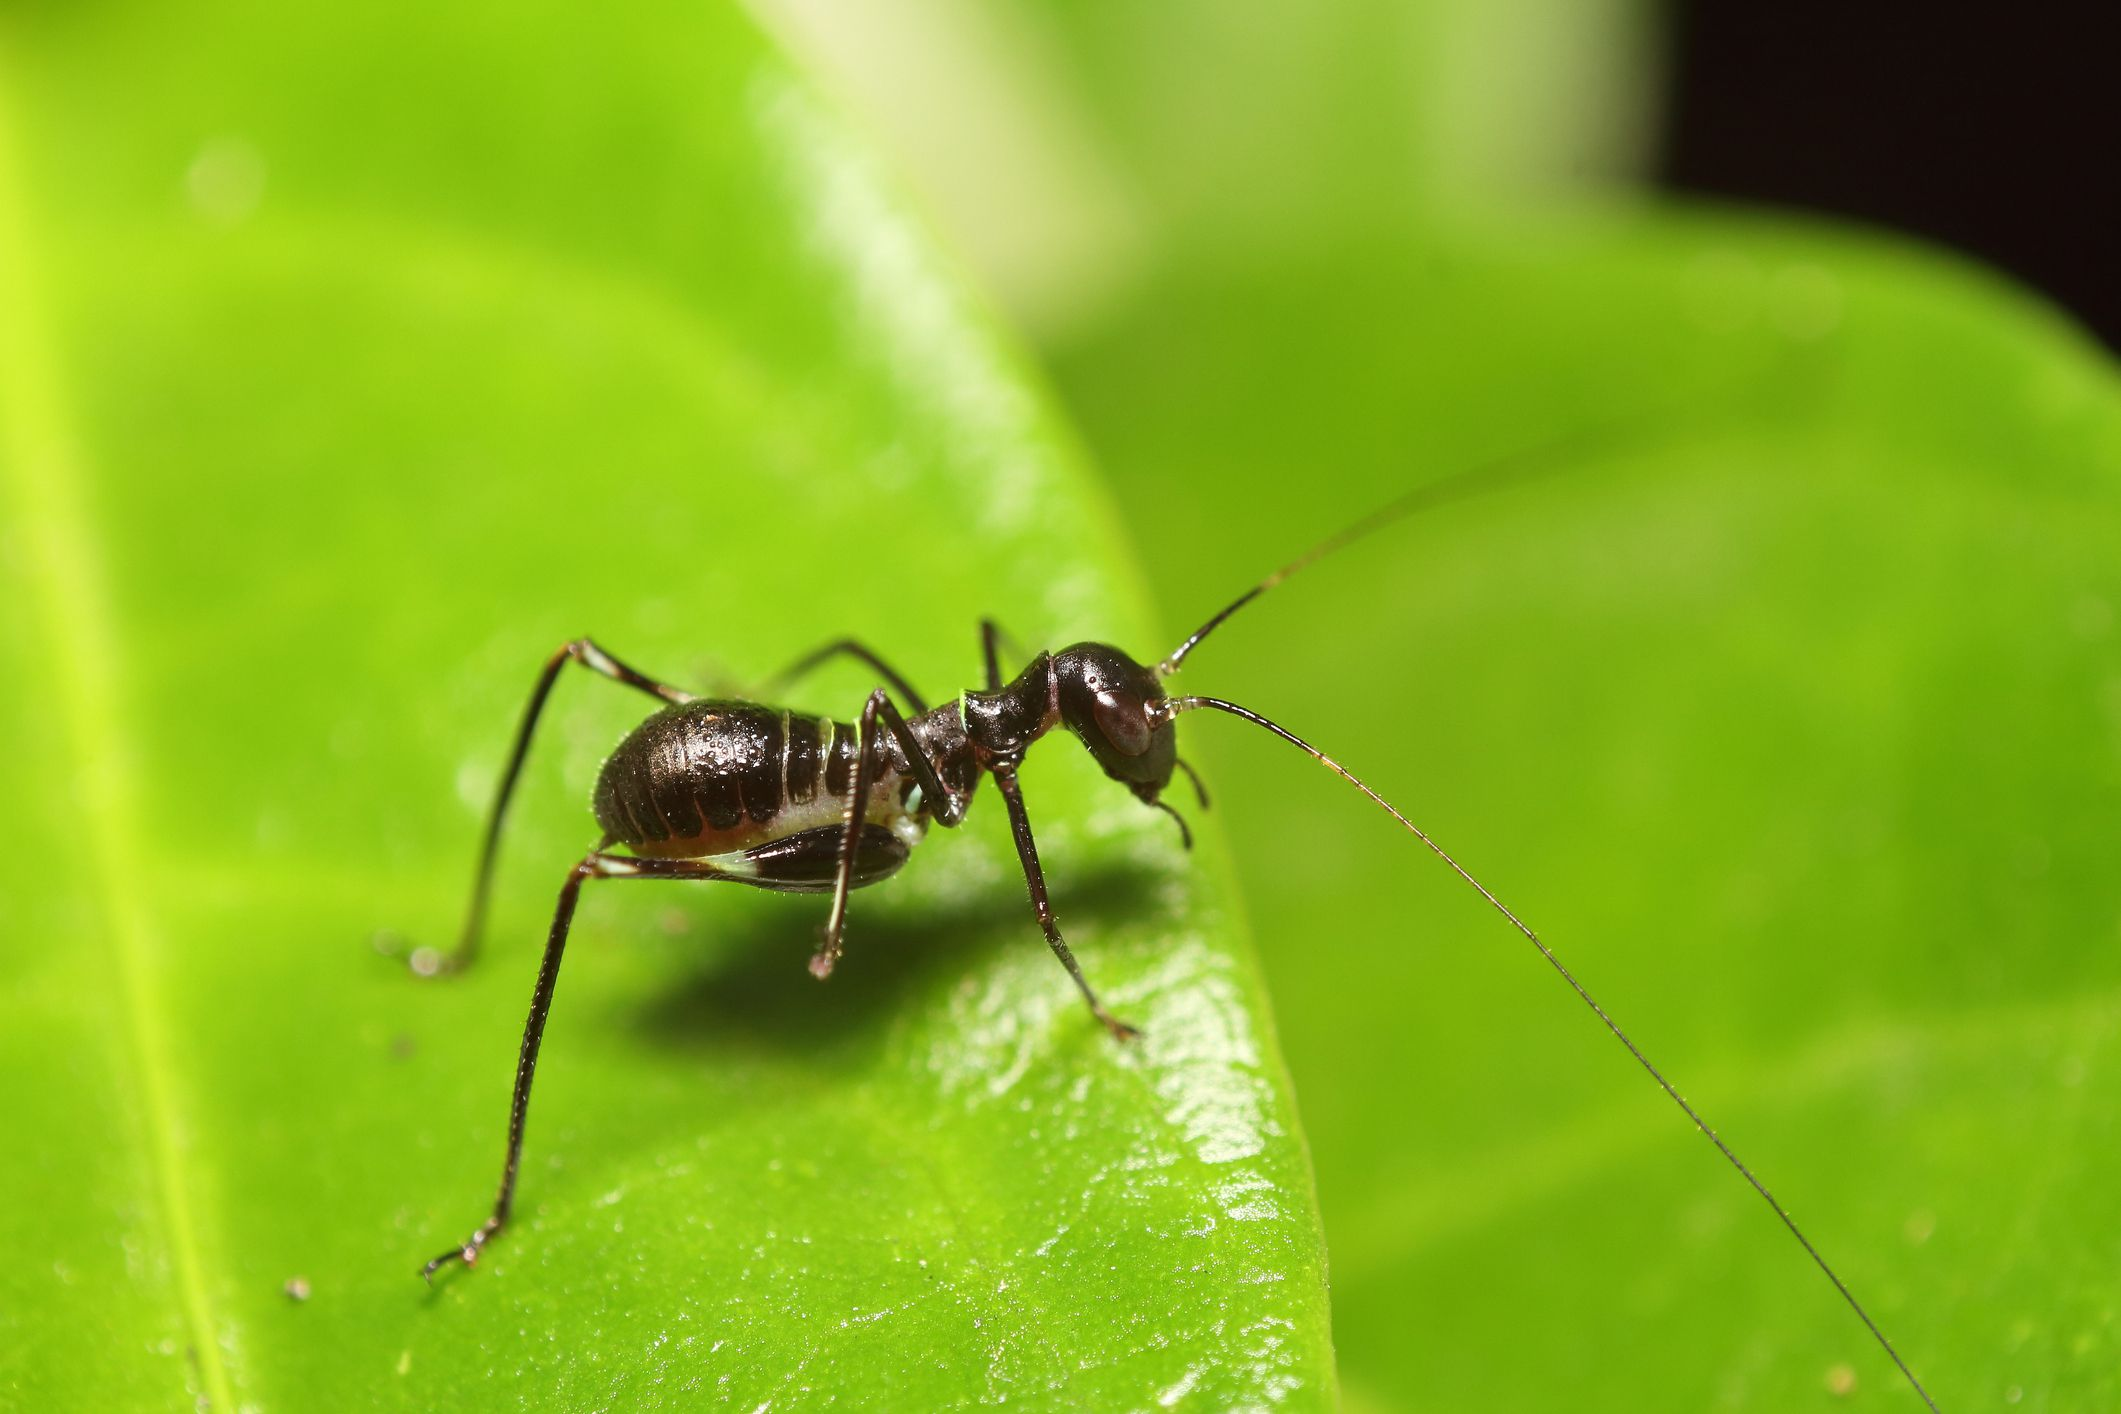 This Is Not An Ant It S A Spider